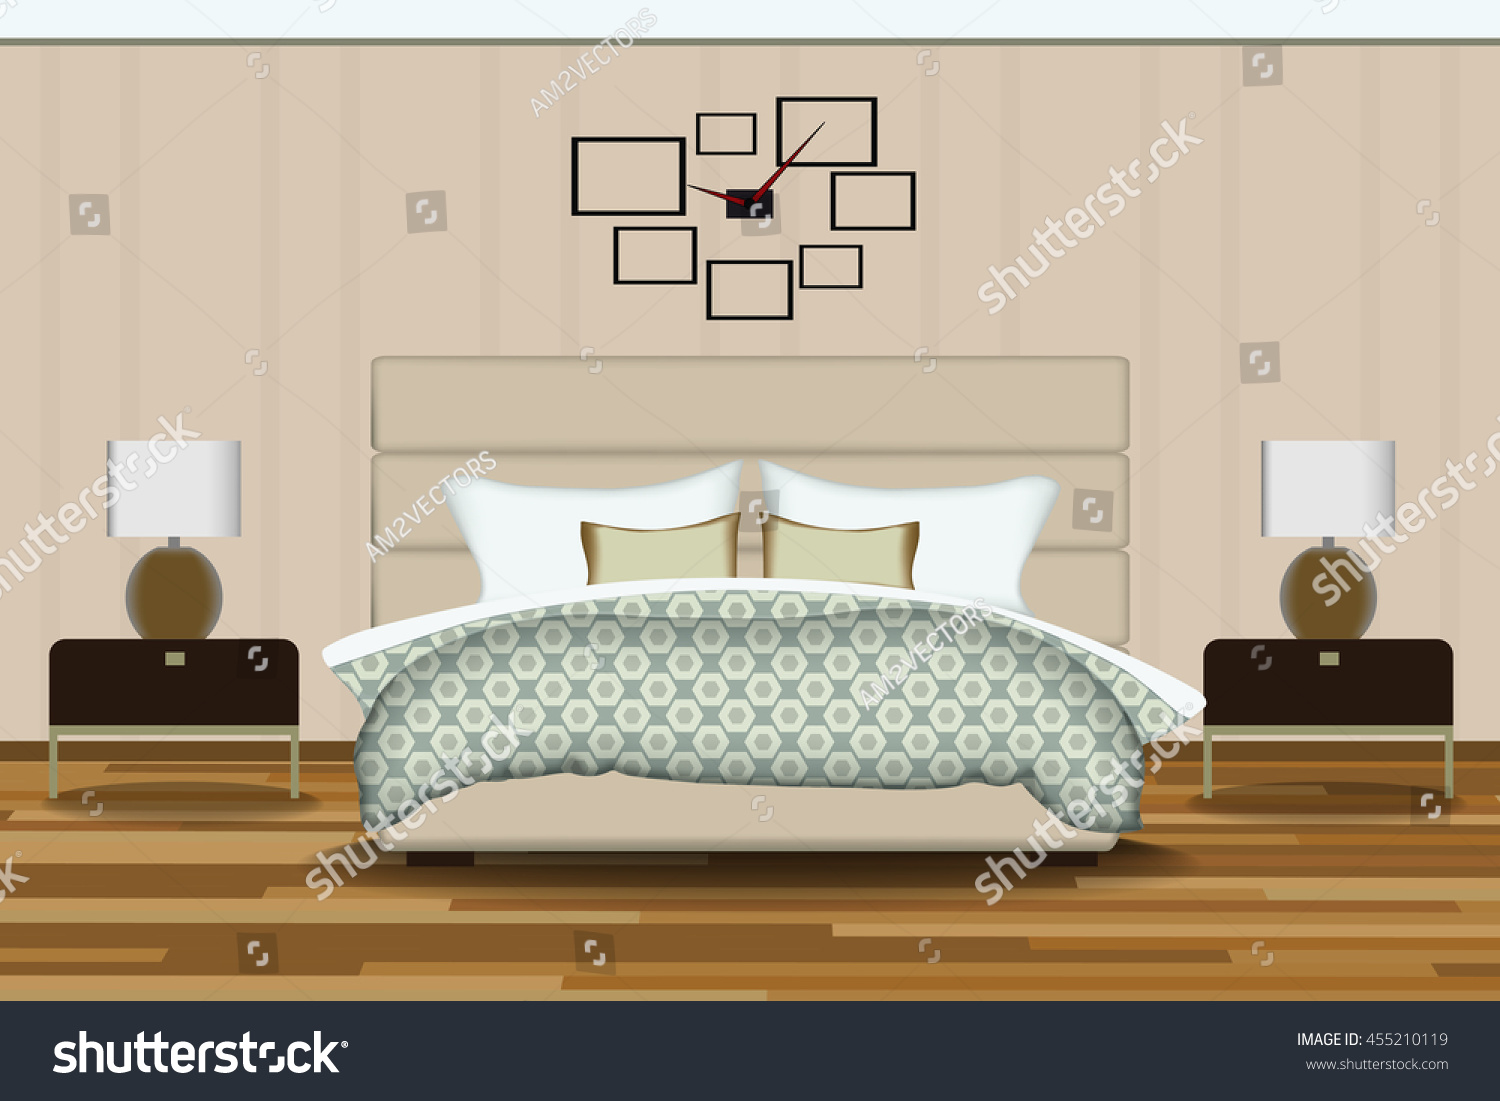 Modern Style Interior Design Vector Illustration Stock Vector Royalty Free 455210119